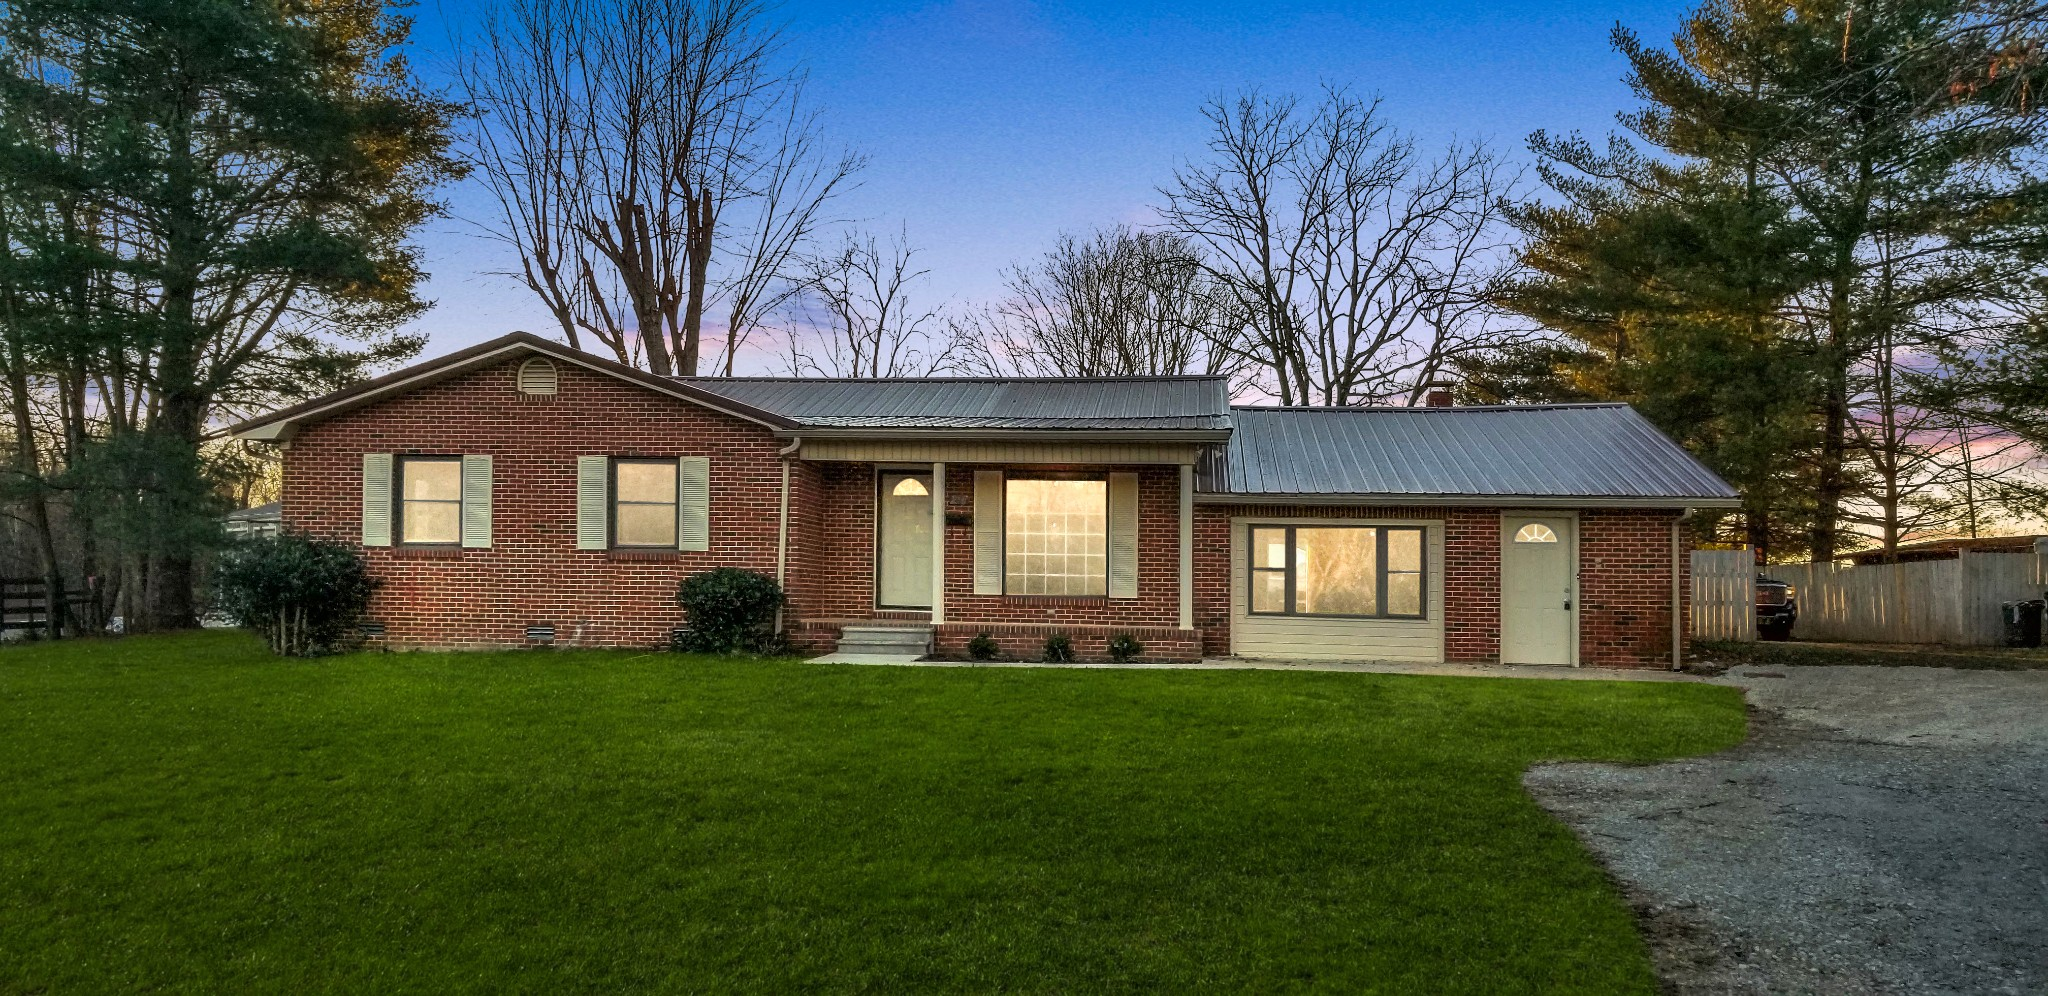 218 Mirandy Rd Property Photo - Cookeville, TN real estate listing